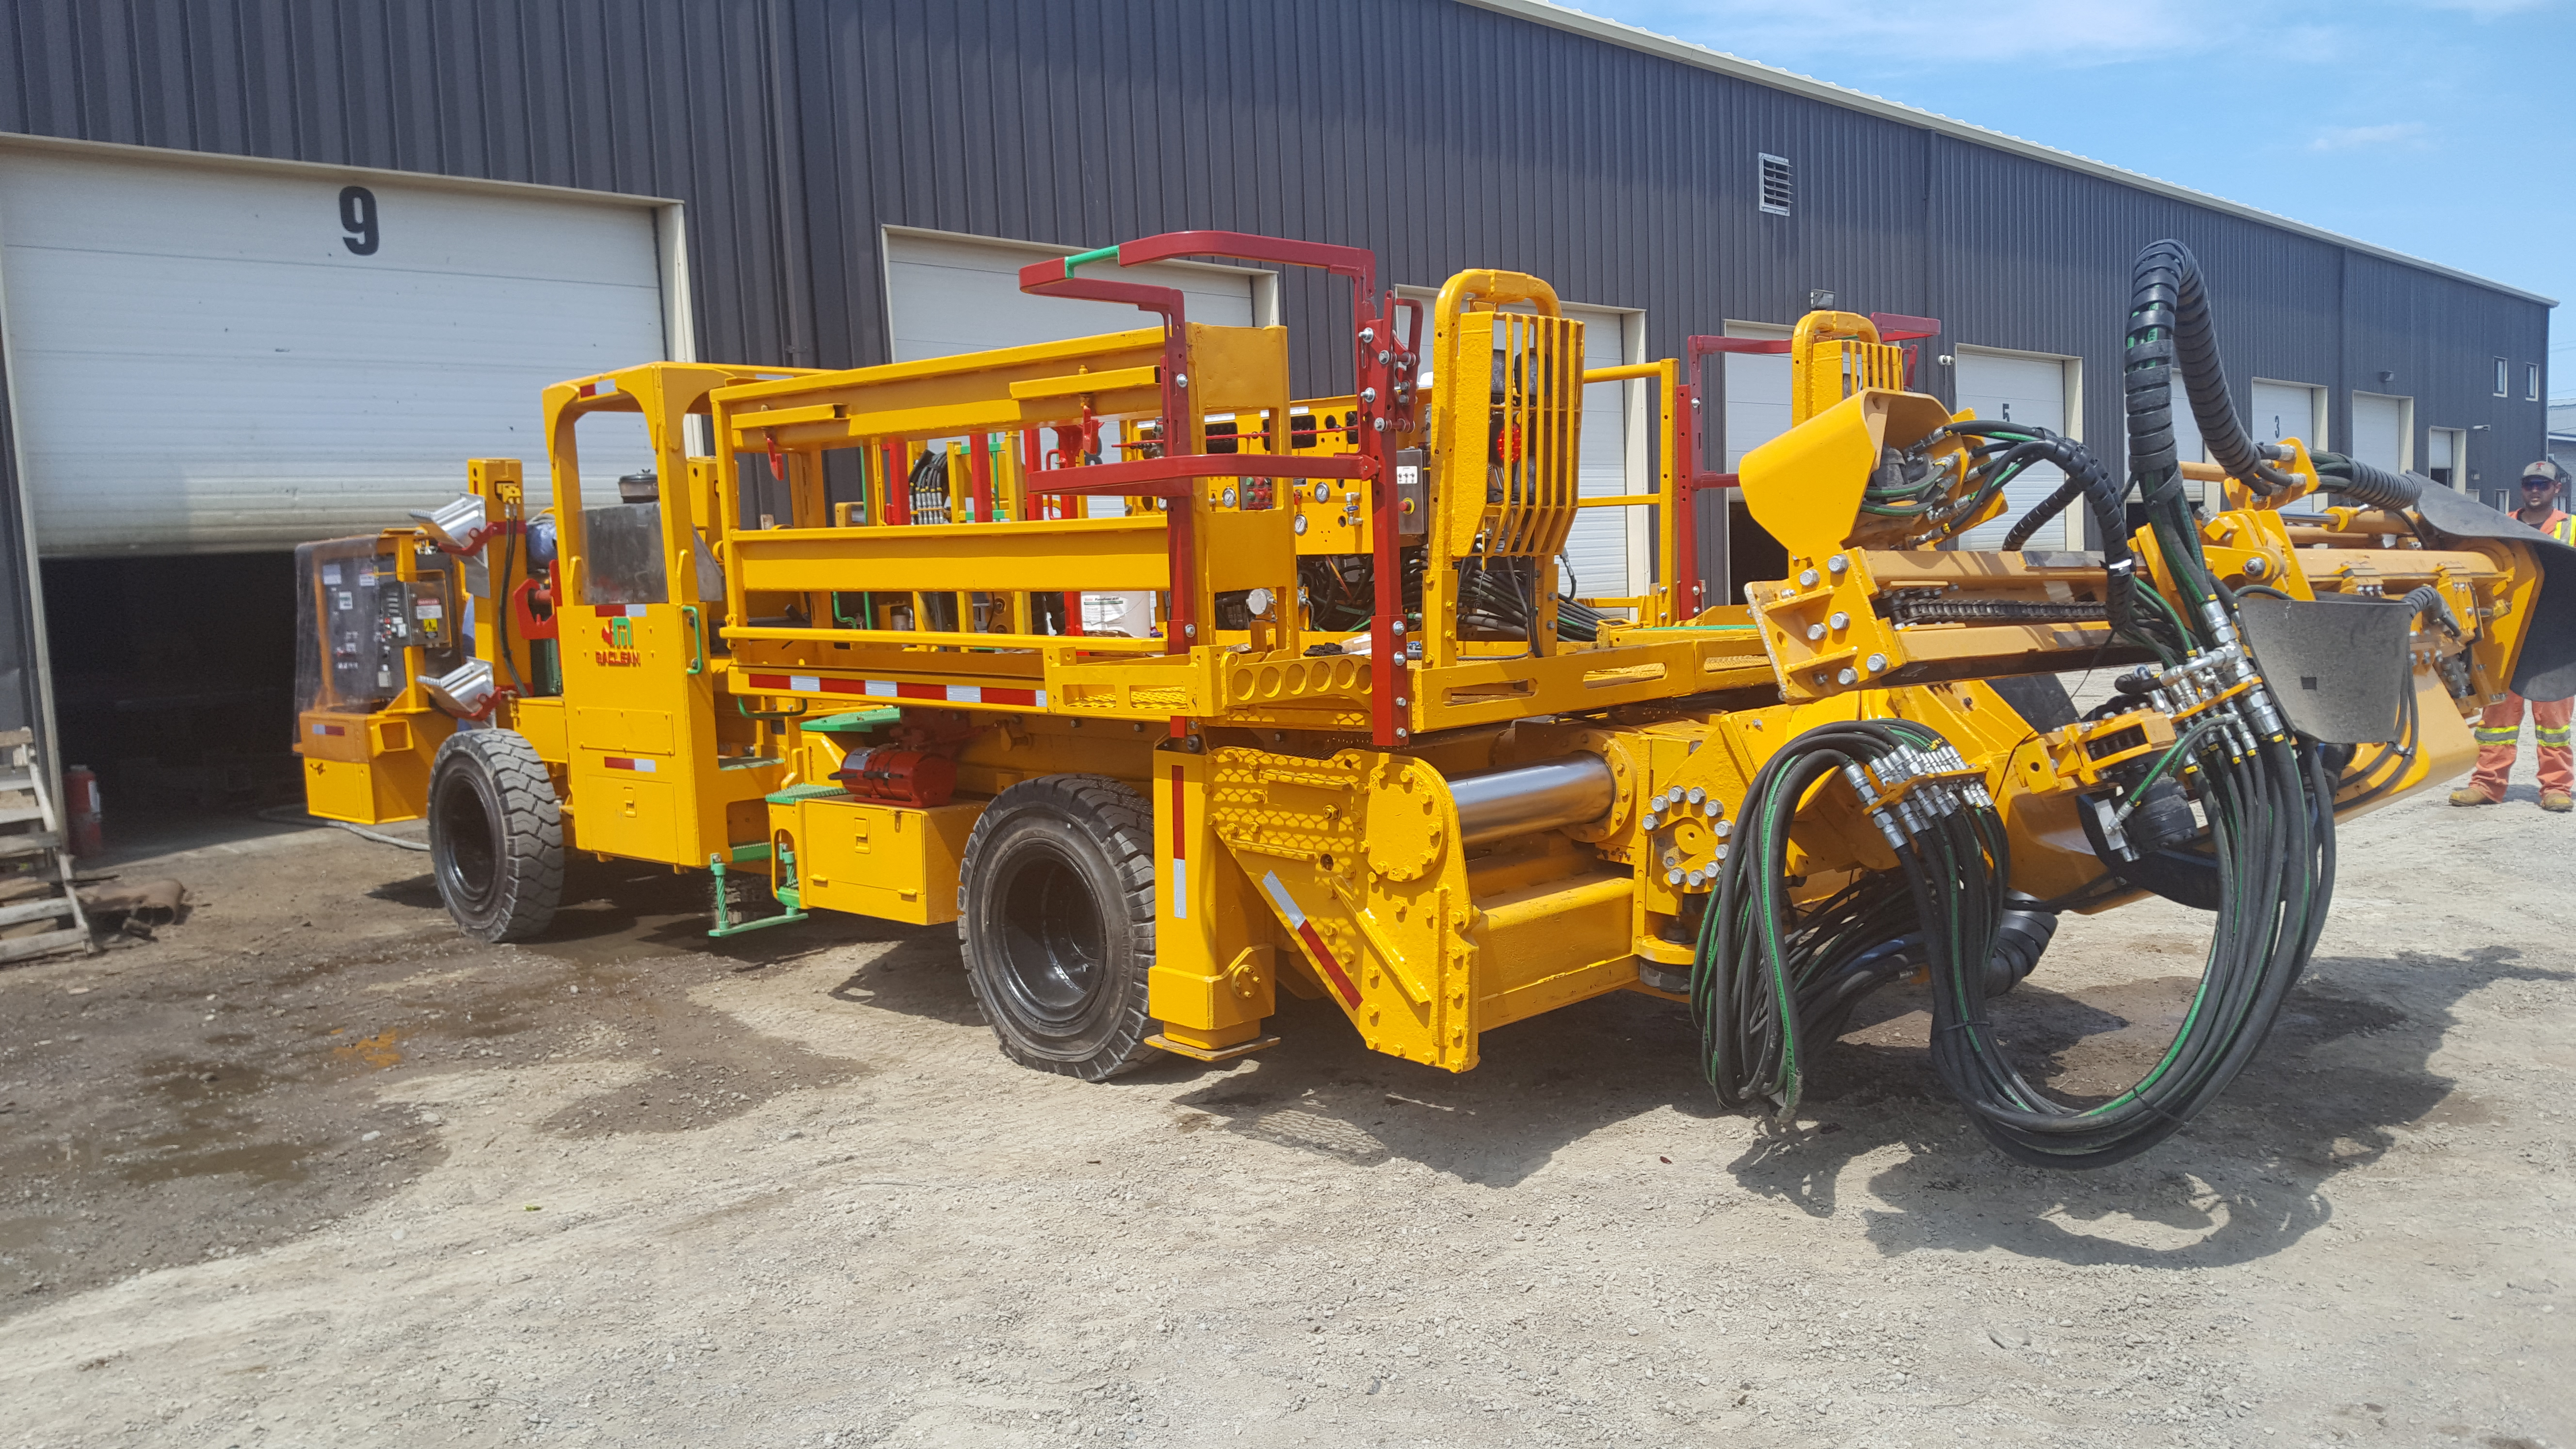 2012 Maclean 928 Bolter